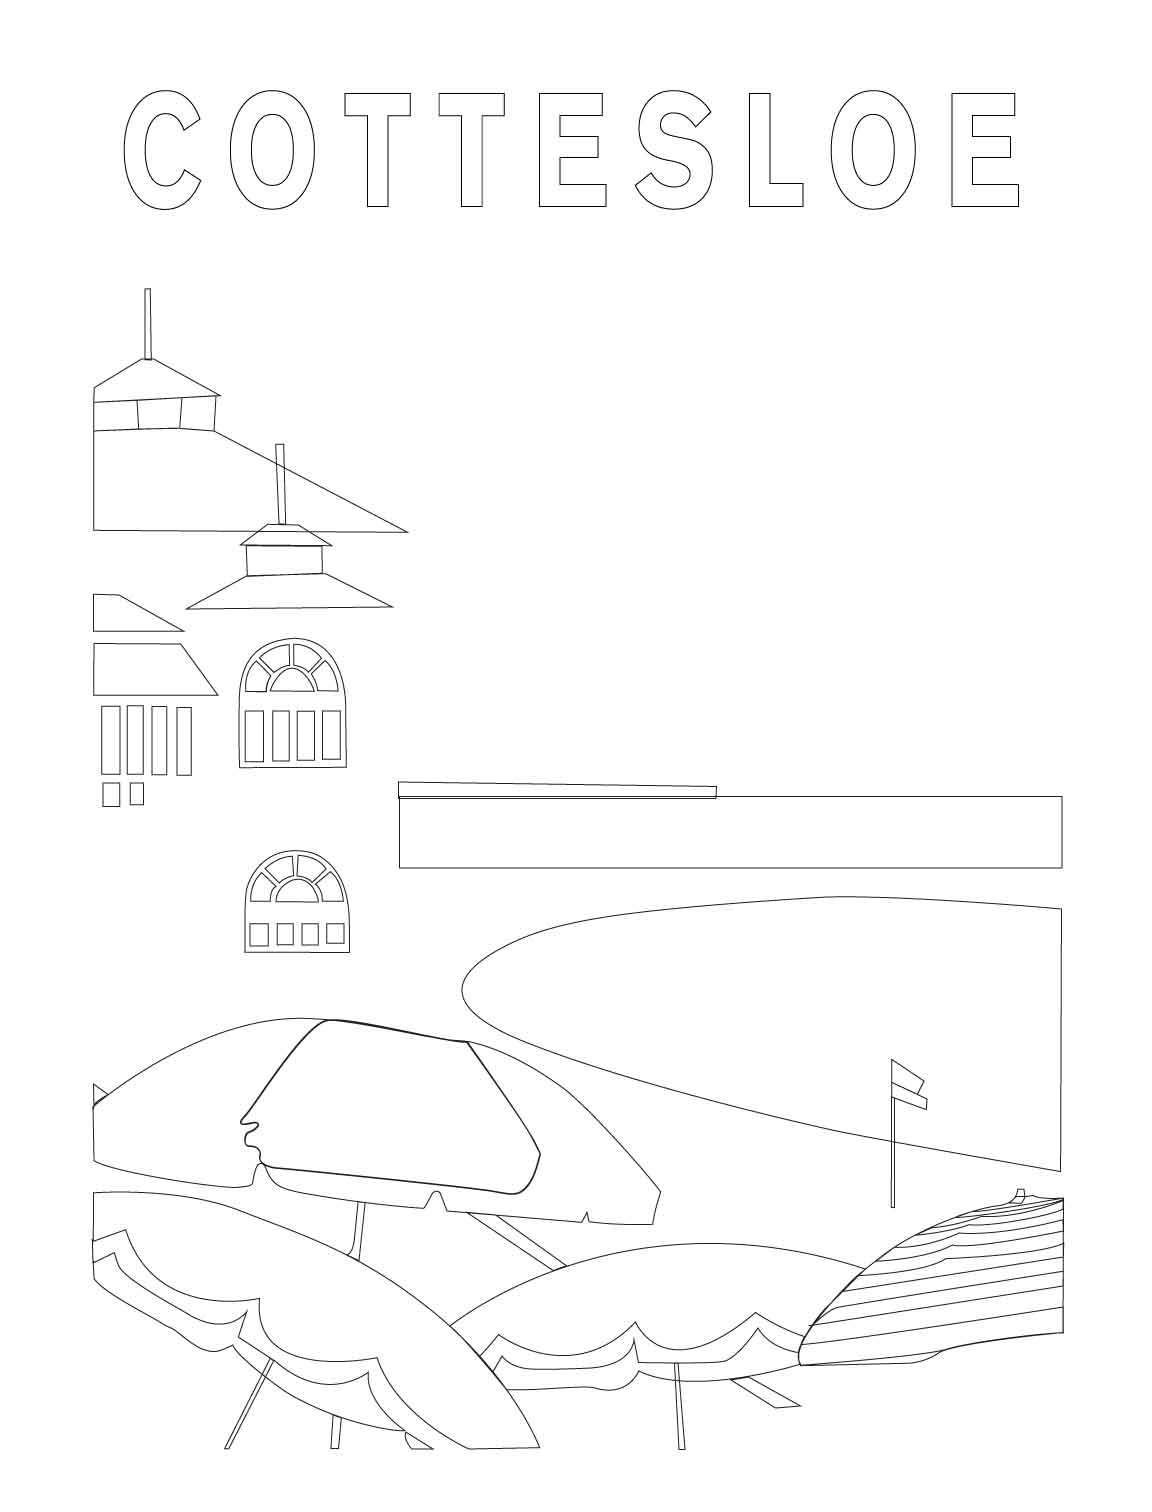 Final version - Cottesloe poster reproduction - image 3 - student project